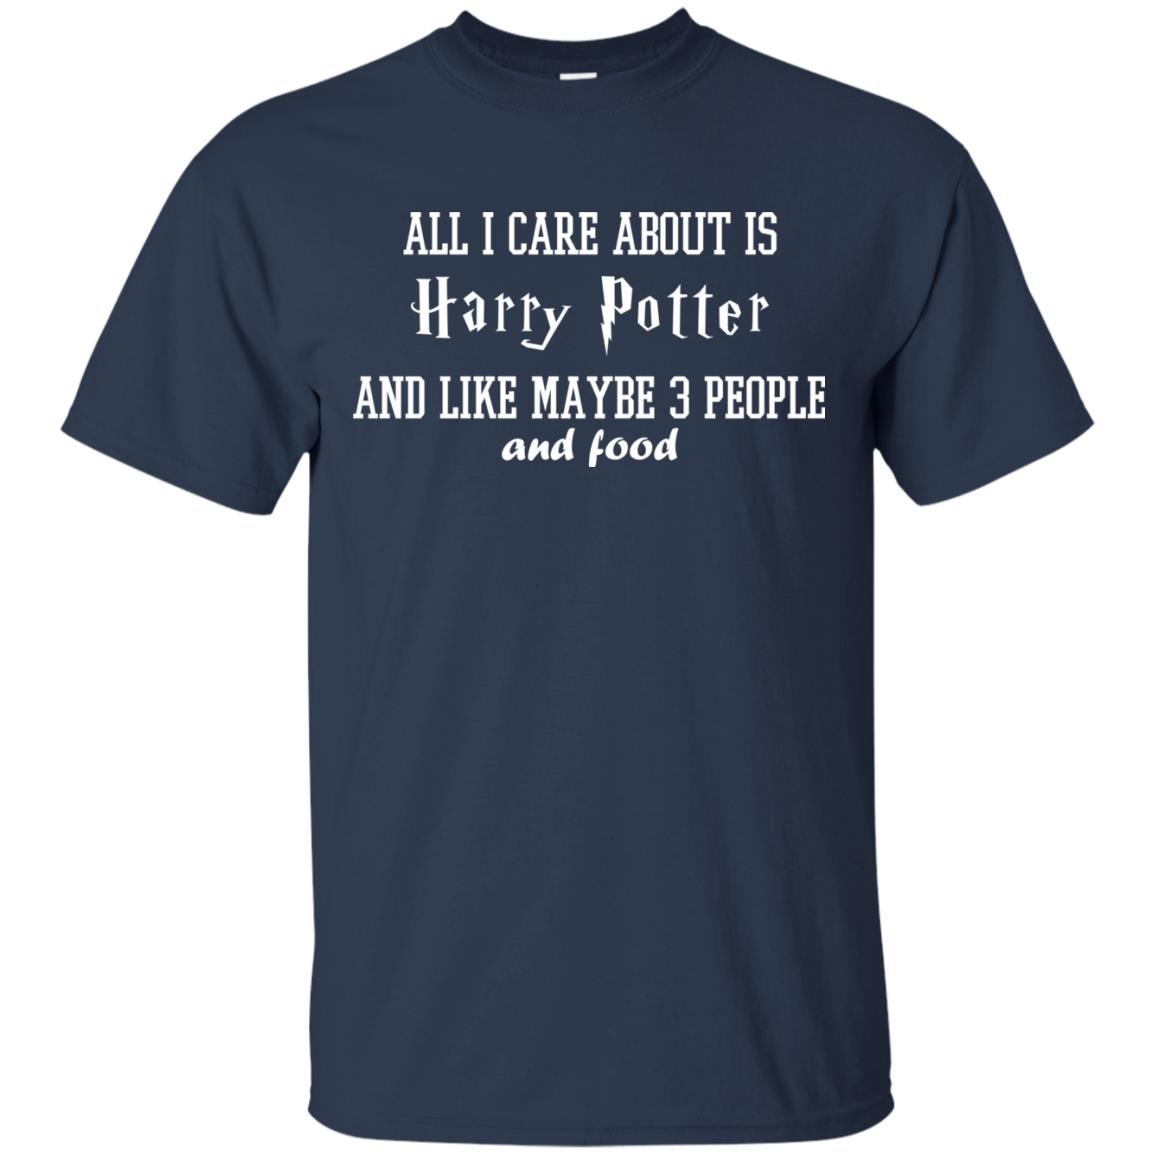 image 280px All I care about is Harry Potter and maybe 3 people and food t shirt